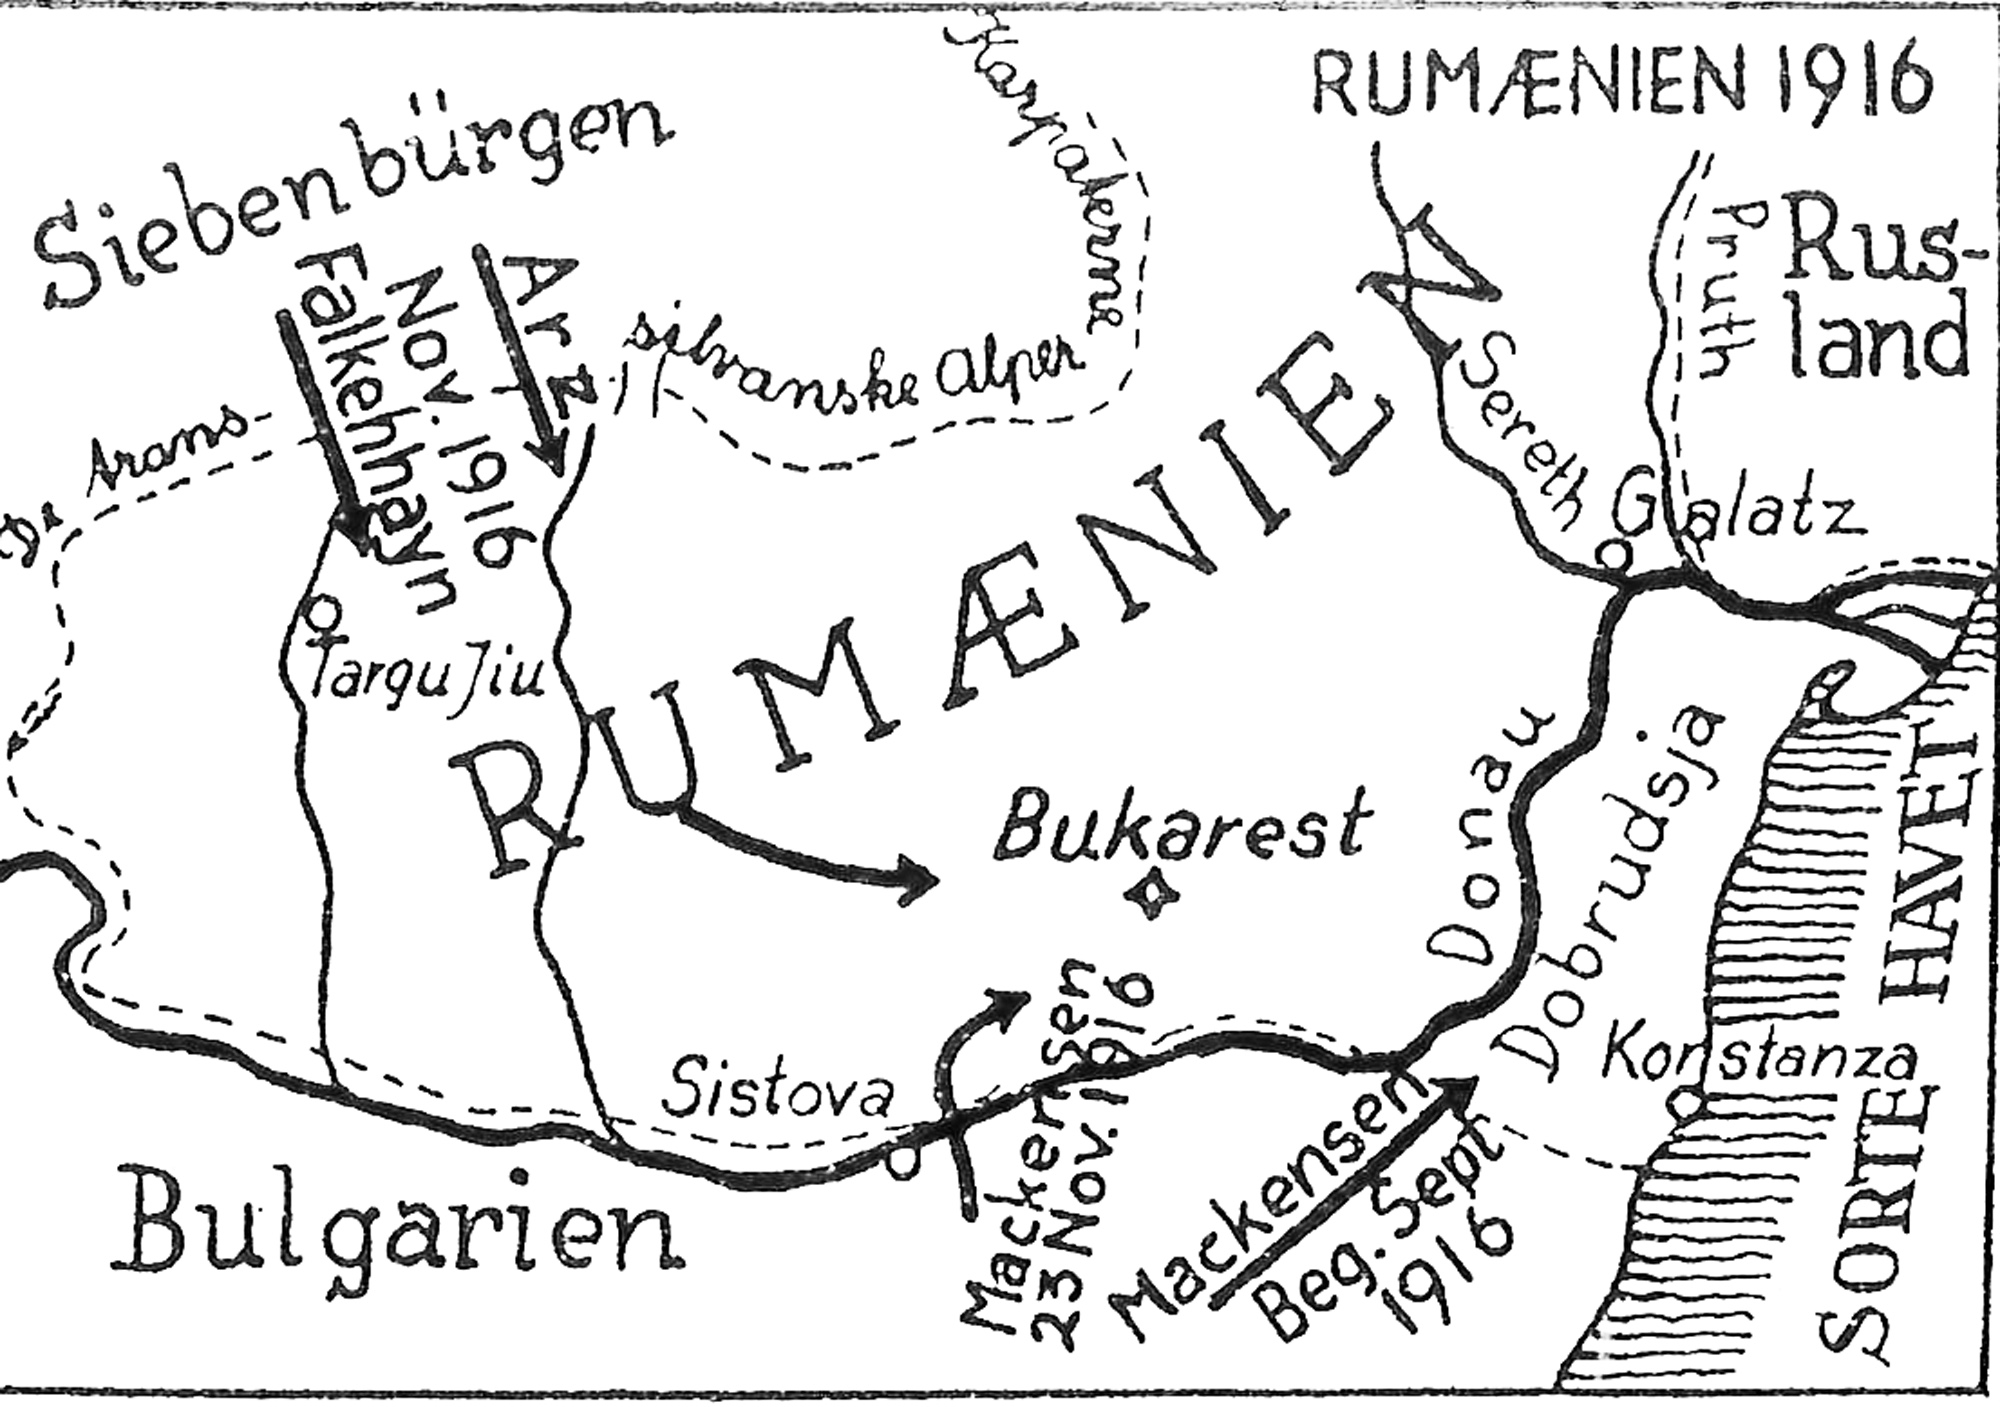 1. november 1916. Tastesen på march i Rumænien